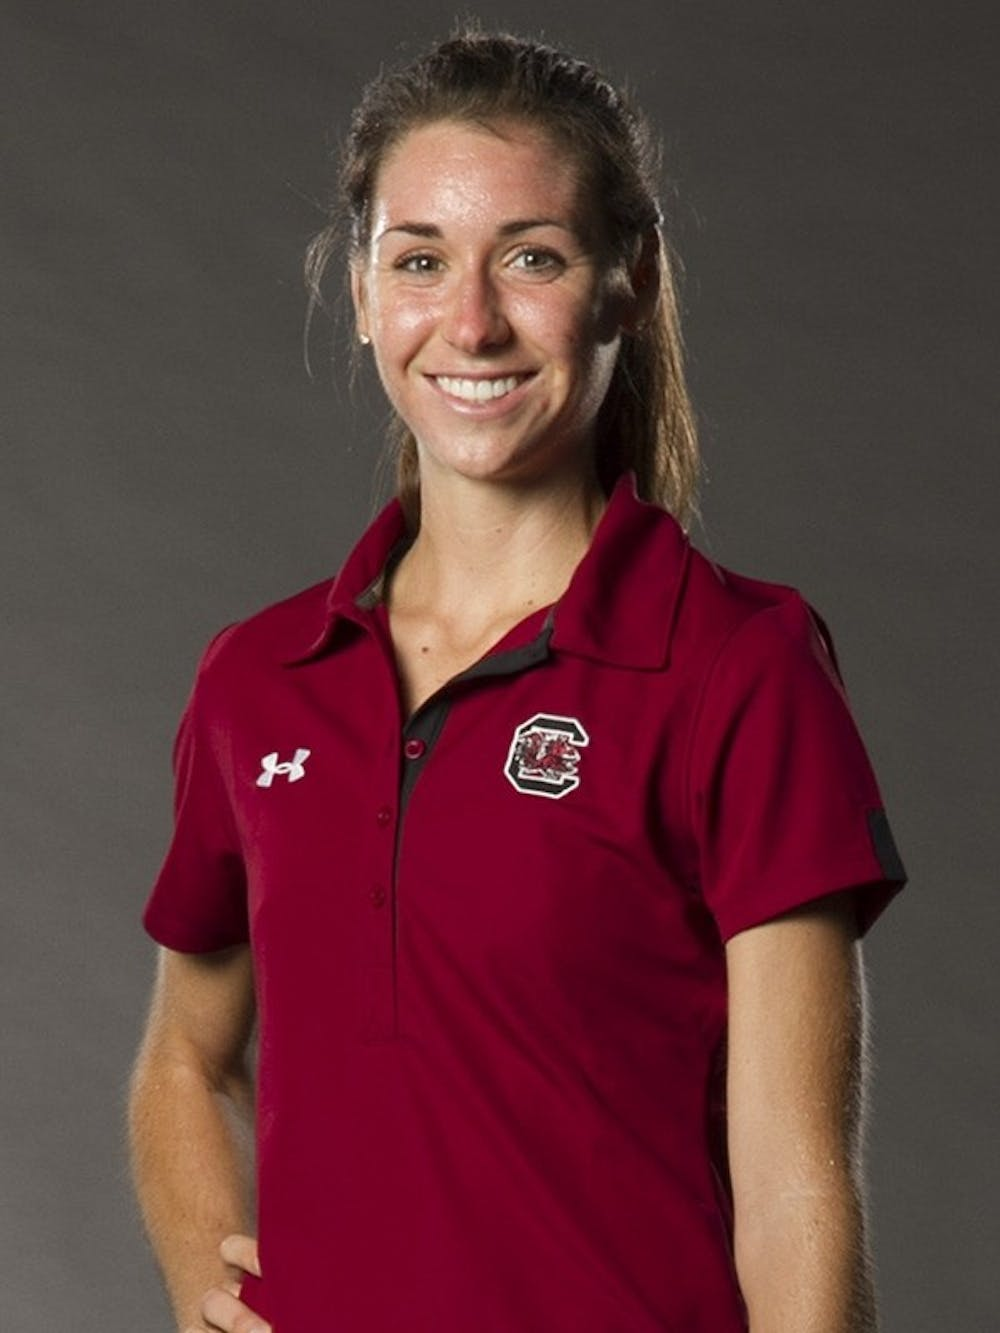 <p>Sophomore Alex Martin said that after the defeat to Georgia, there was a little extra motivation and focus within the team. The Gamecocks are ranked No. 49 in the nation.</p>